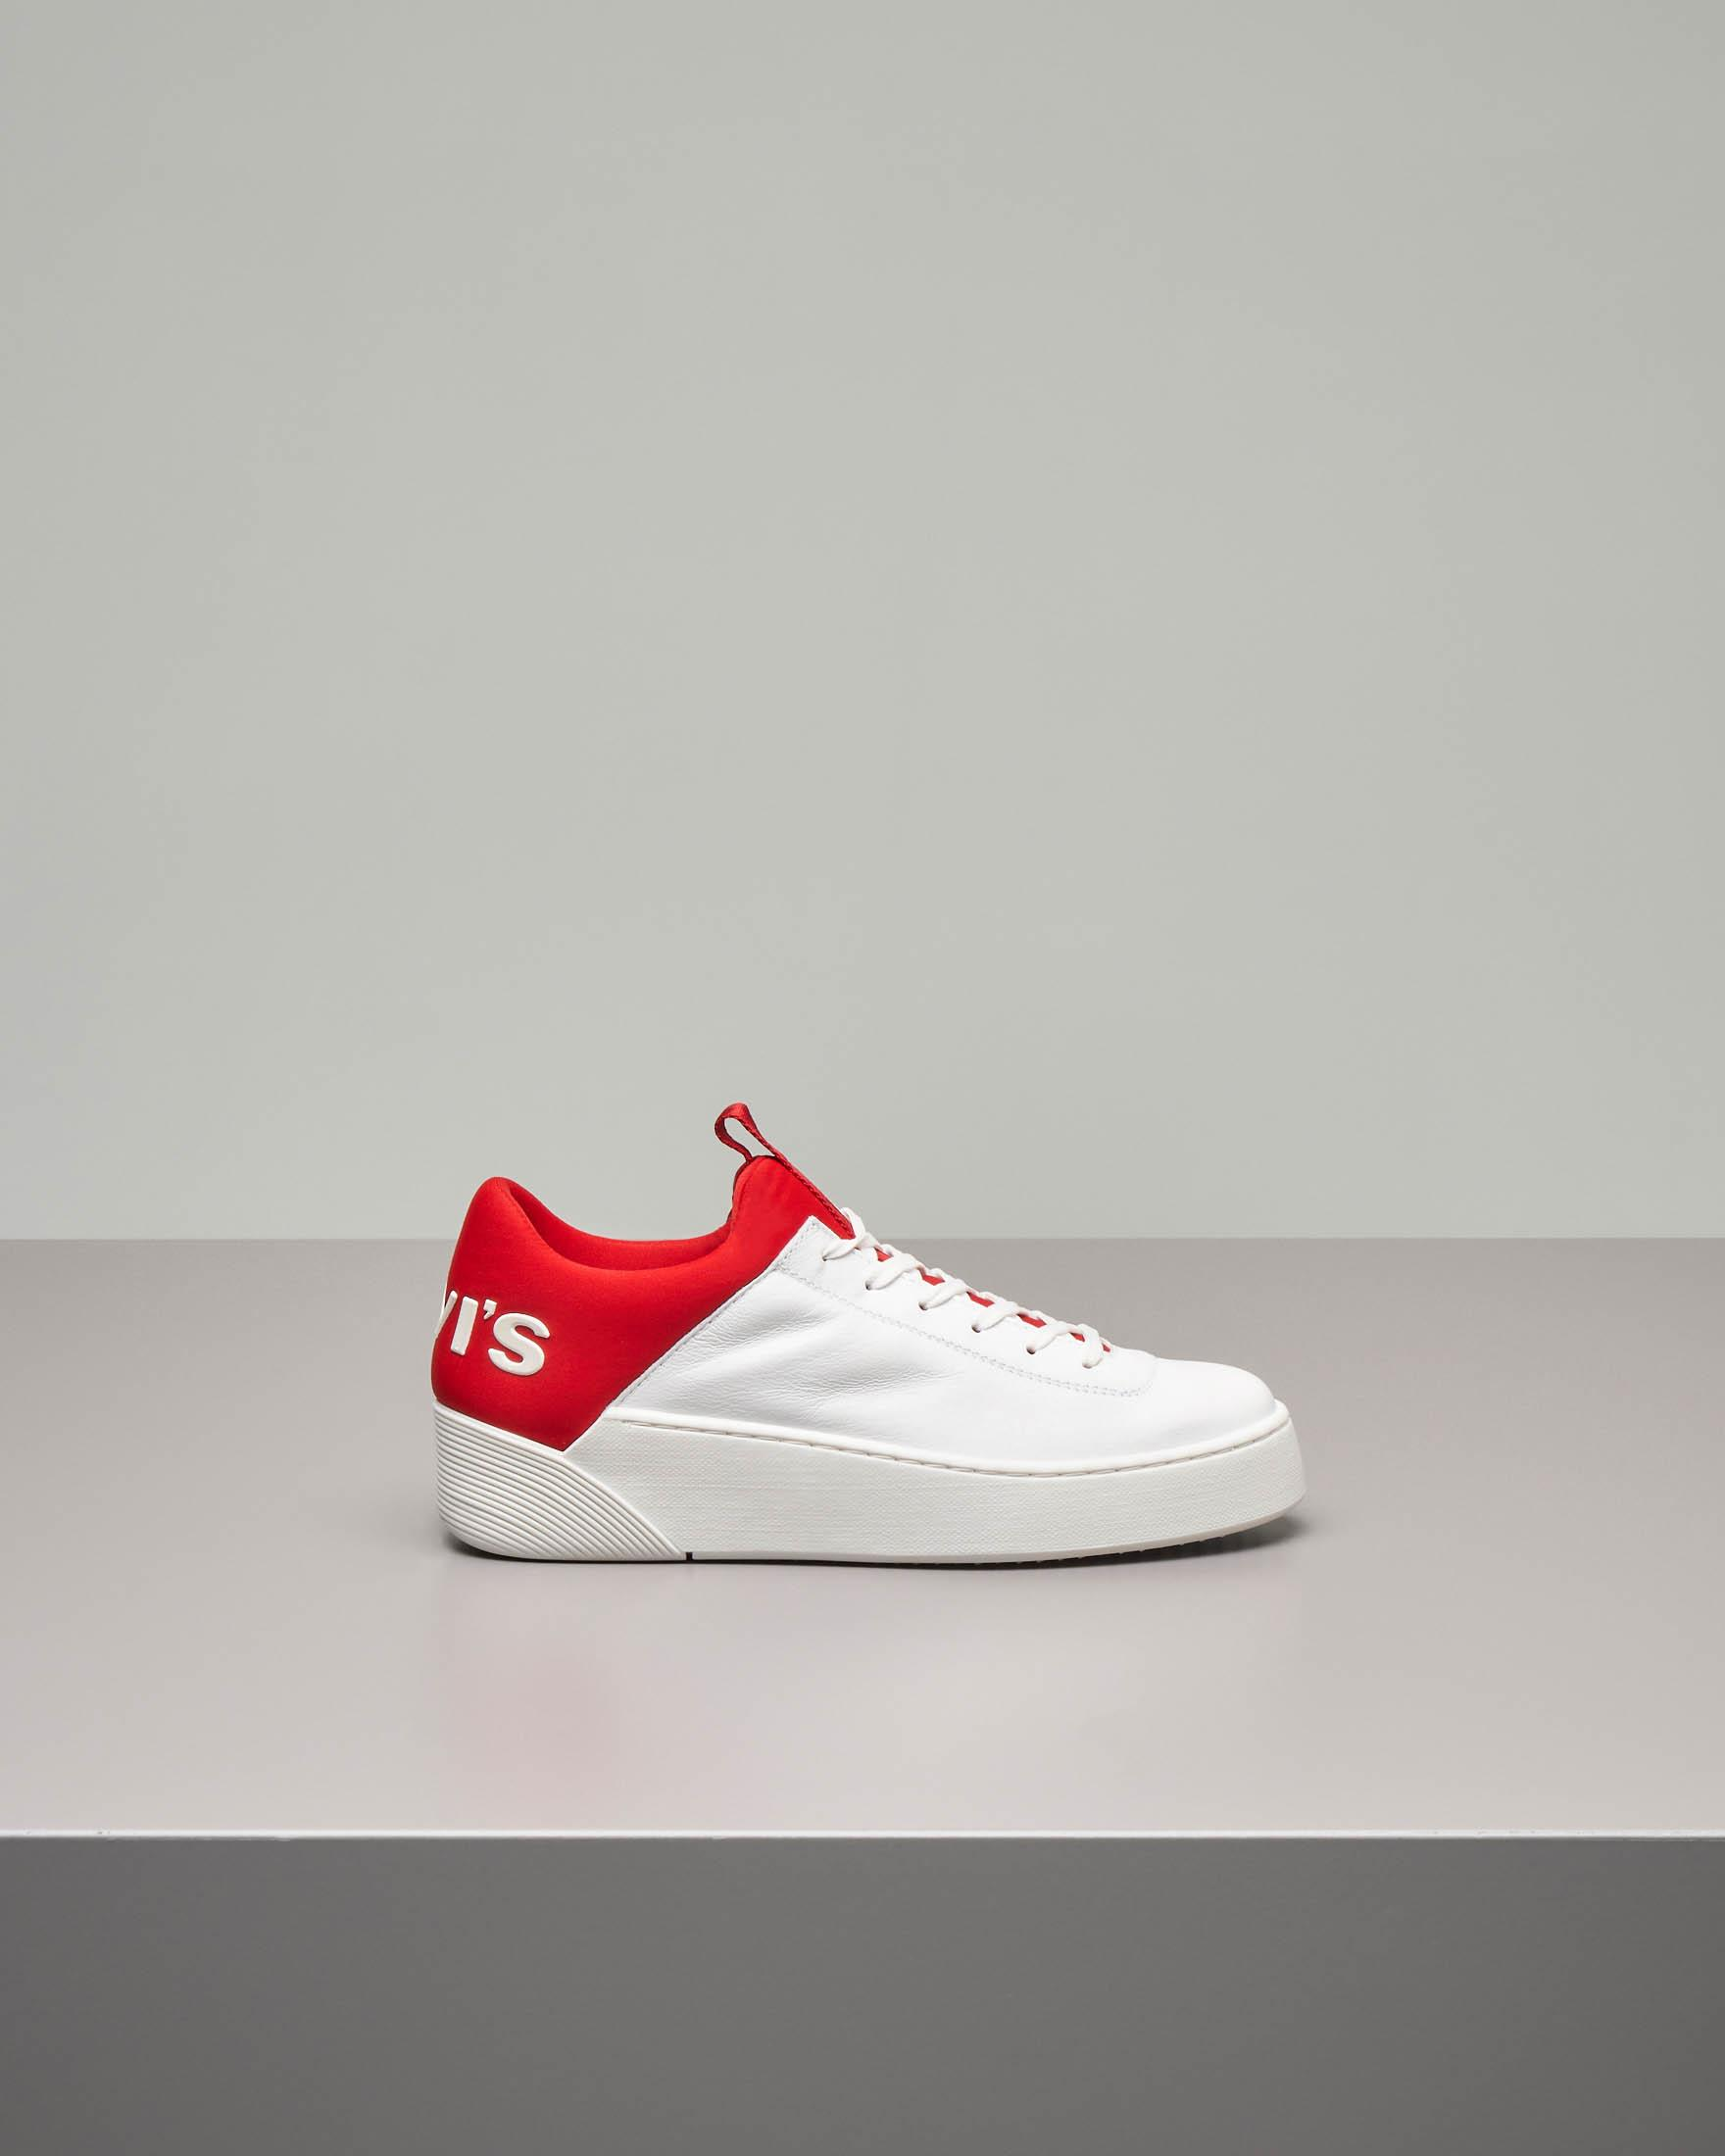 Sneaker Levi's Mullet bianche con logo oversized rosso